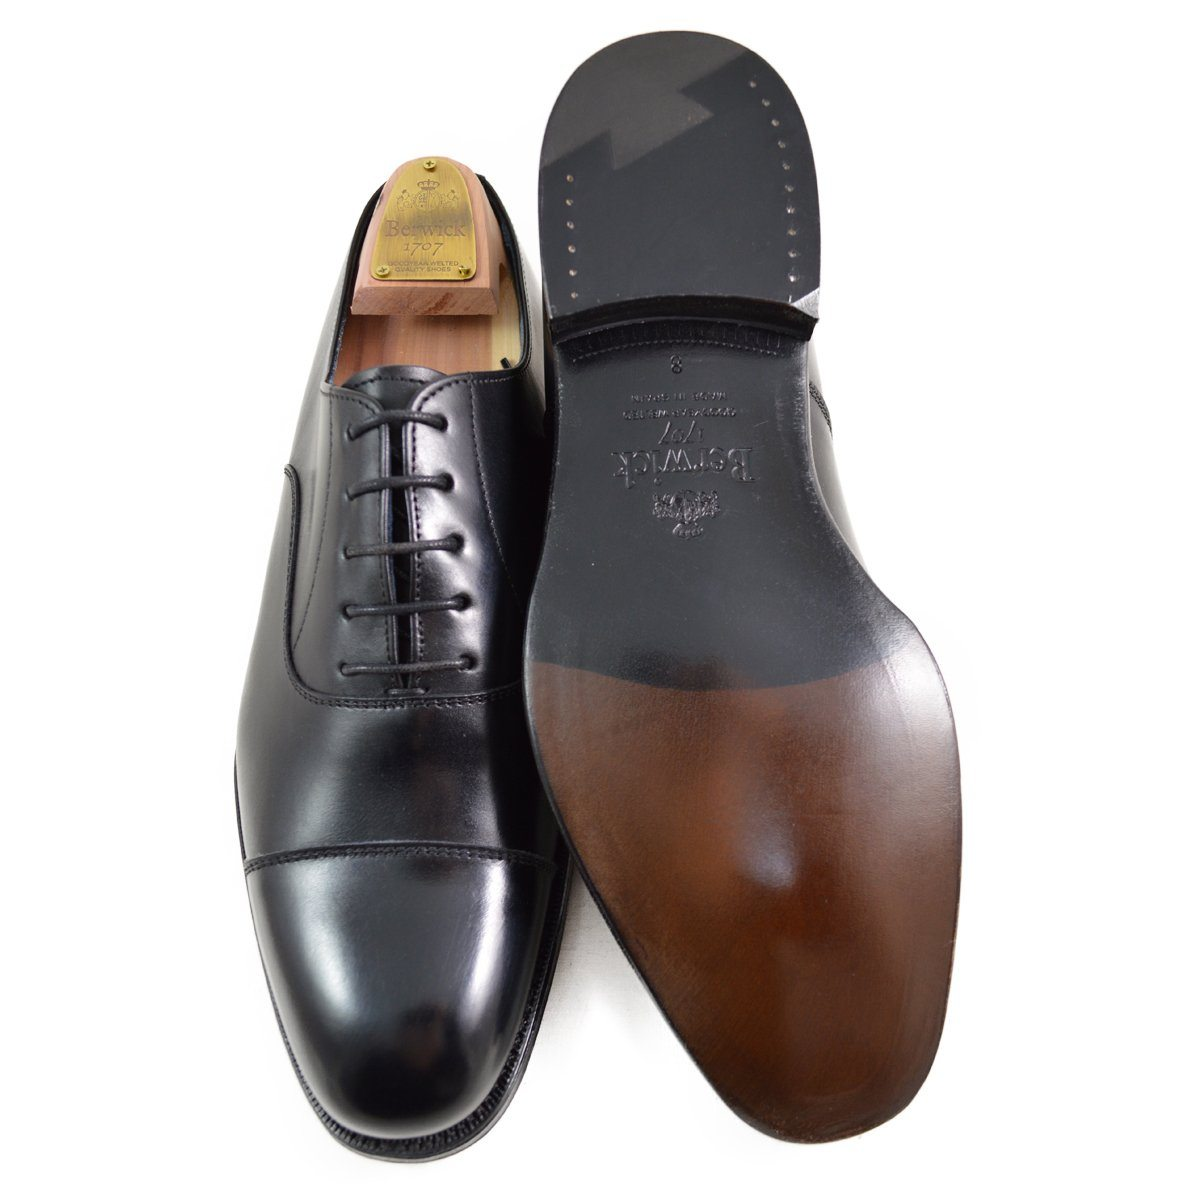 Berwick 1707 Oxford (6824) - Black Boxcalf - A Fine Pair of Shoes ... b8f911e219